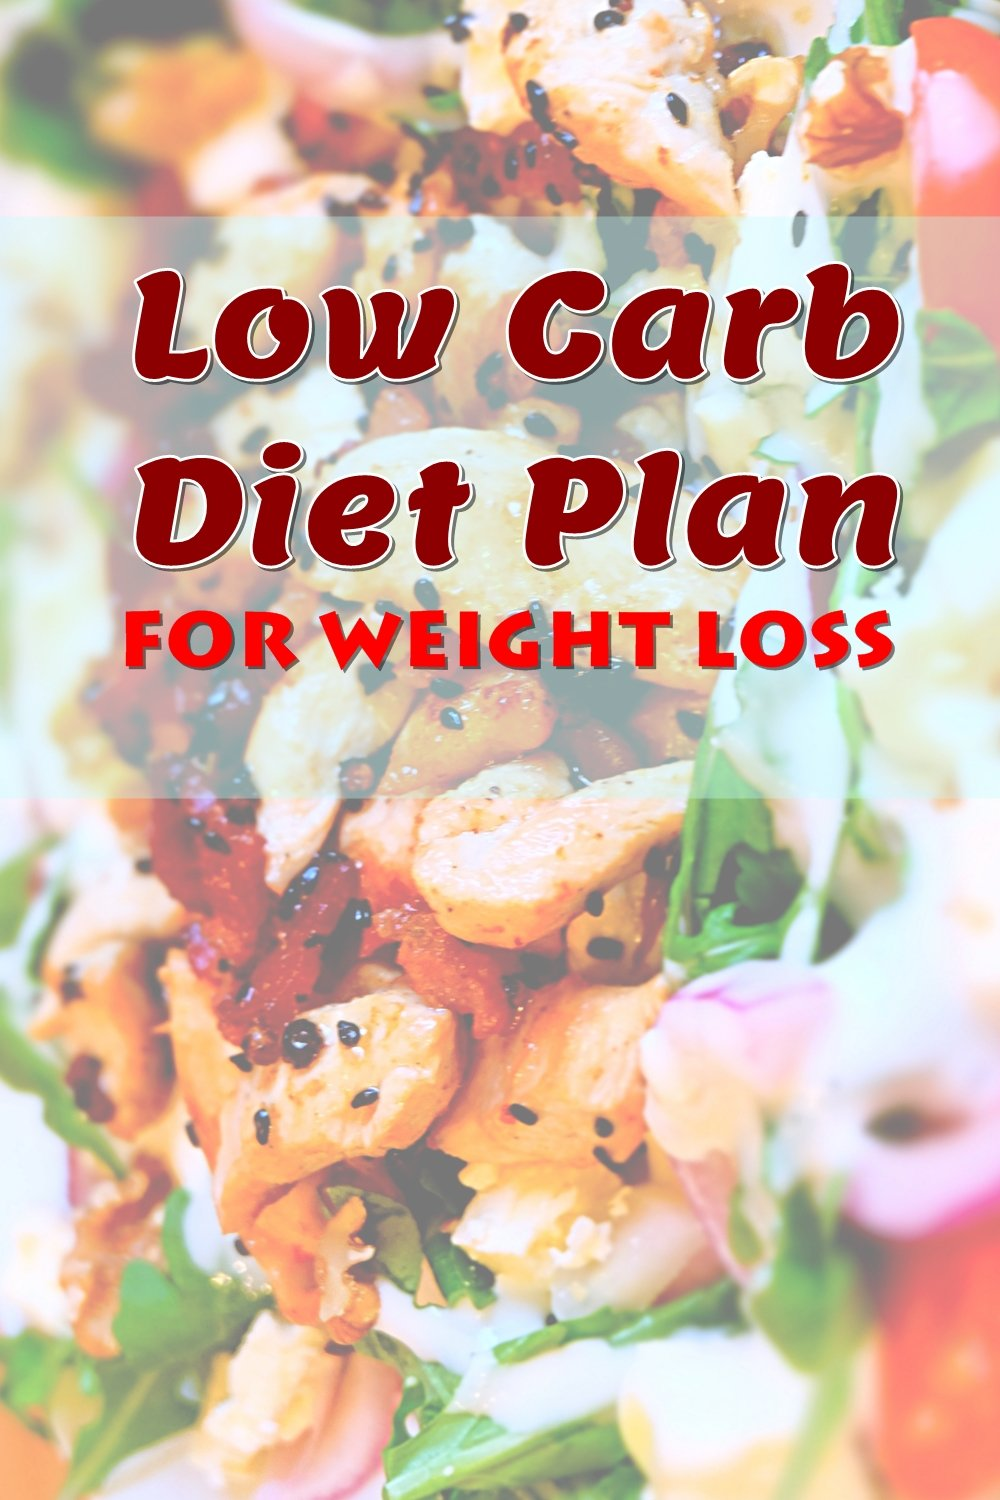 Benefits of Following a Low-Carb Diet